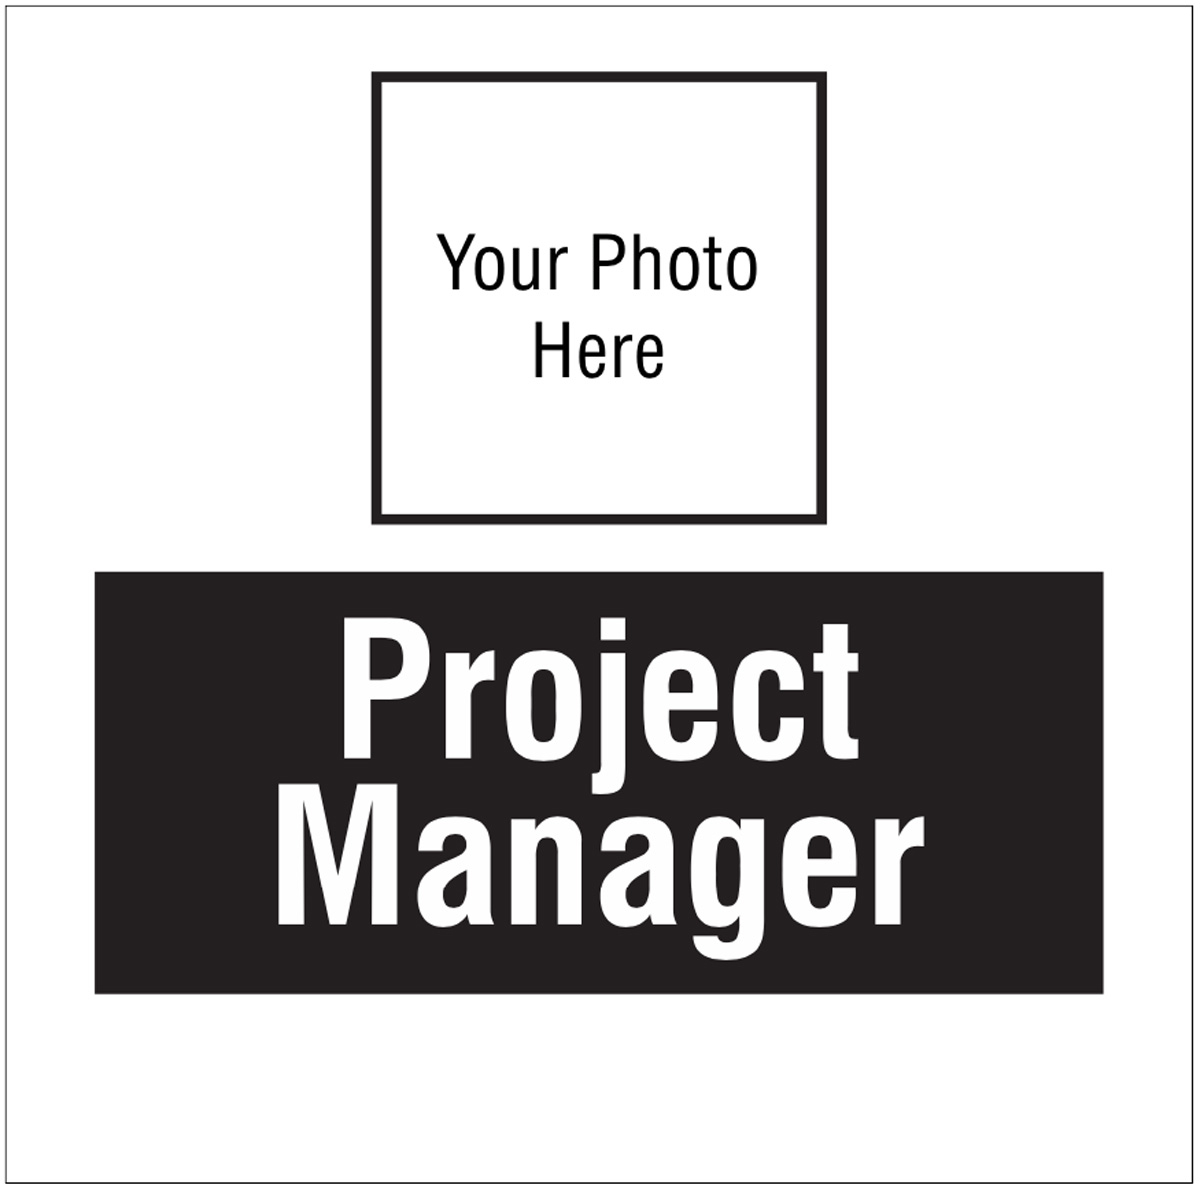 Project manager, your photo here site saver sign 400x400mm